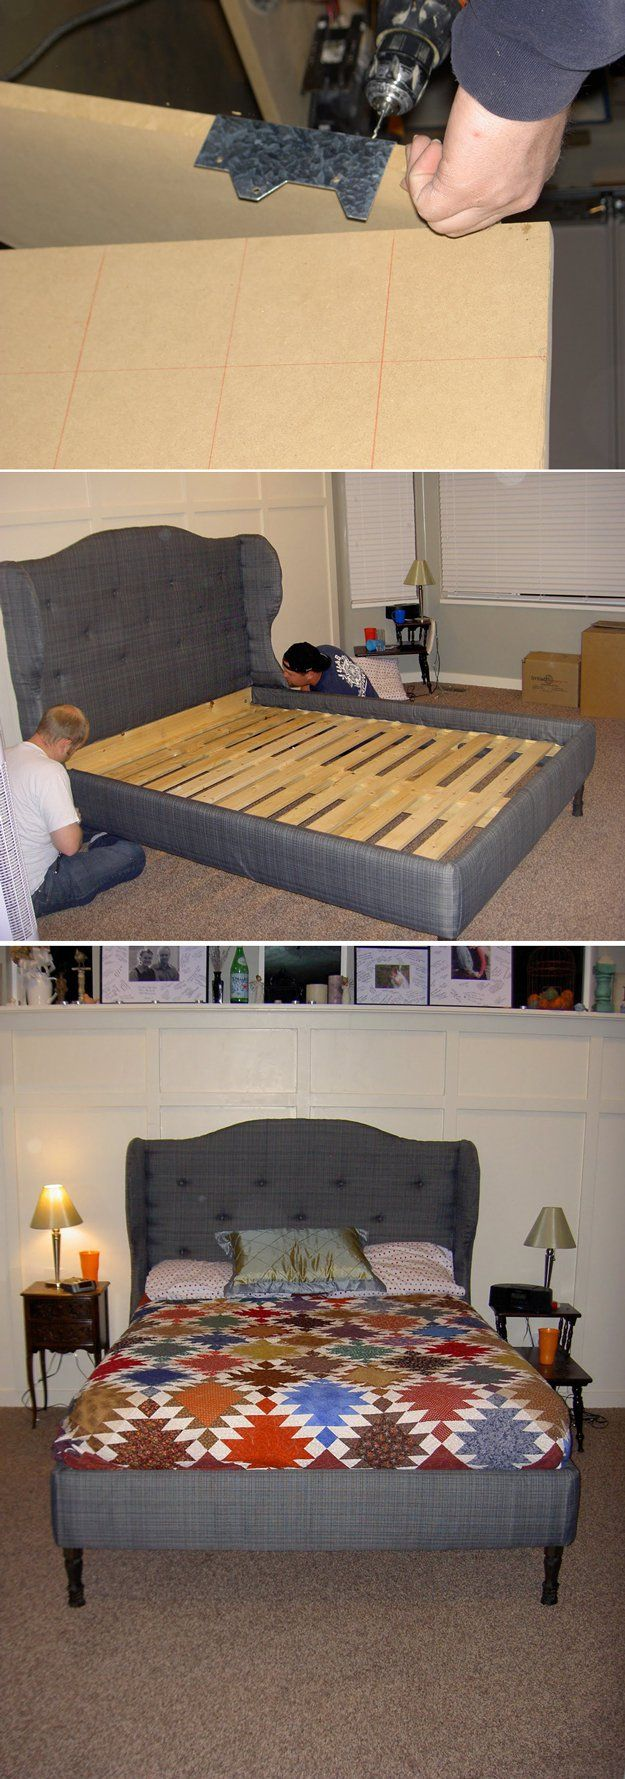 DIY Headboard Ideas | Home Decor Queen | Pinterest | Cabeceros ...